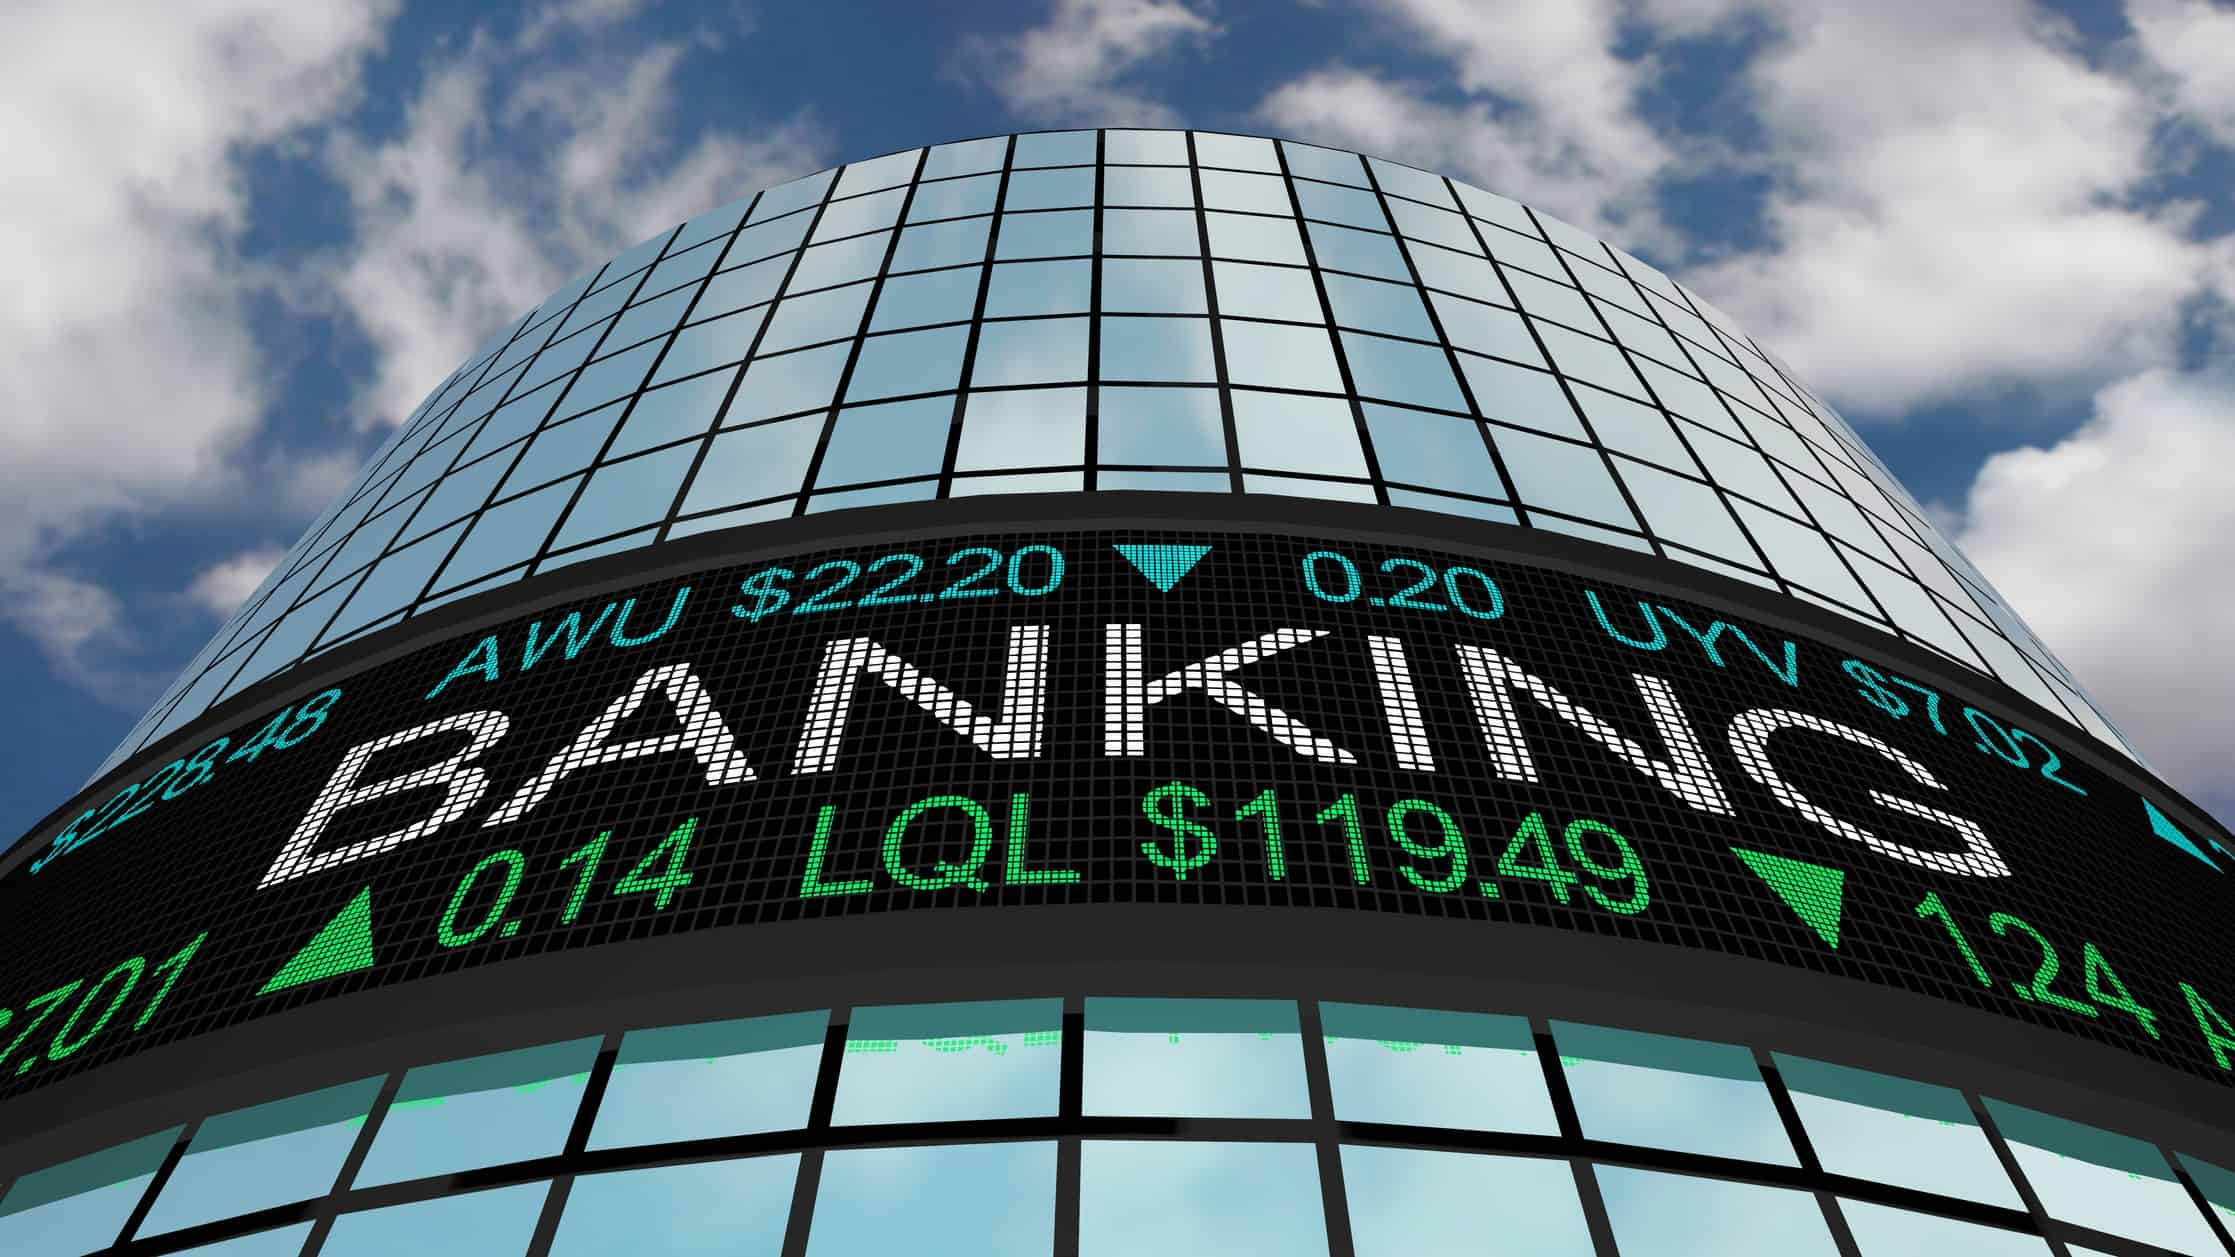 city building with banking share prices, anz share price